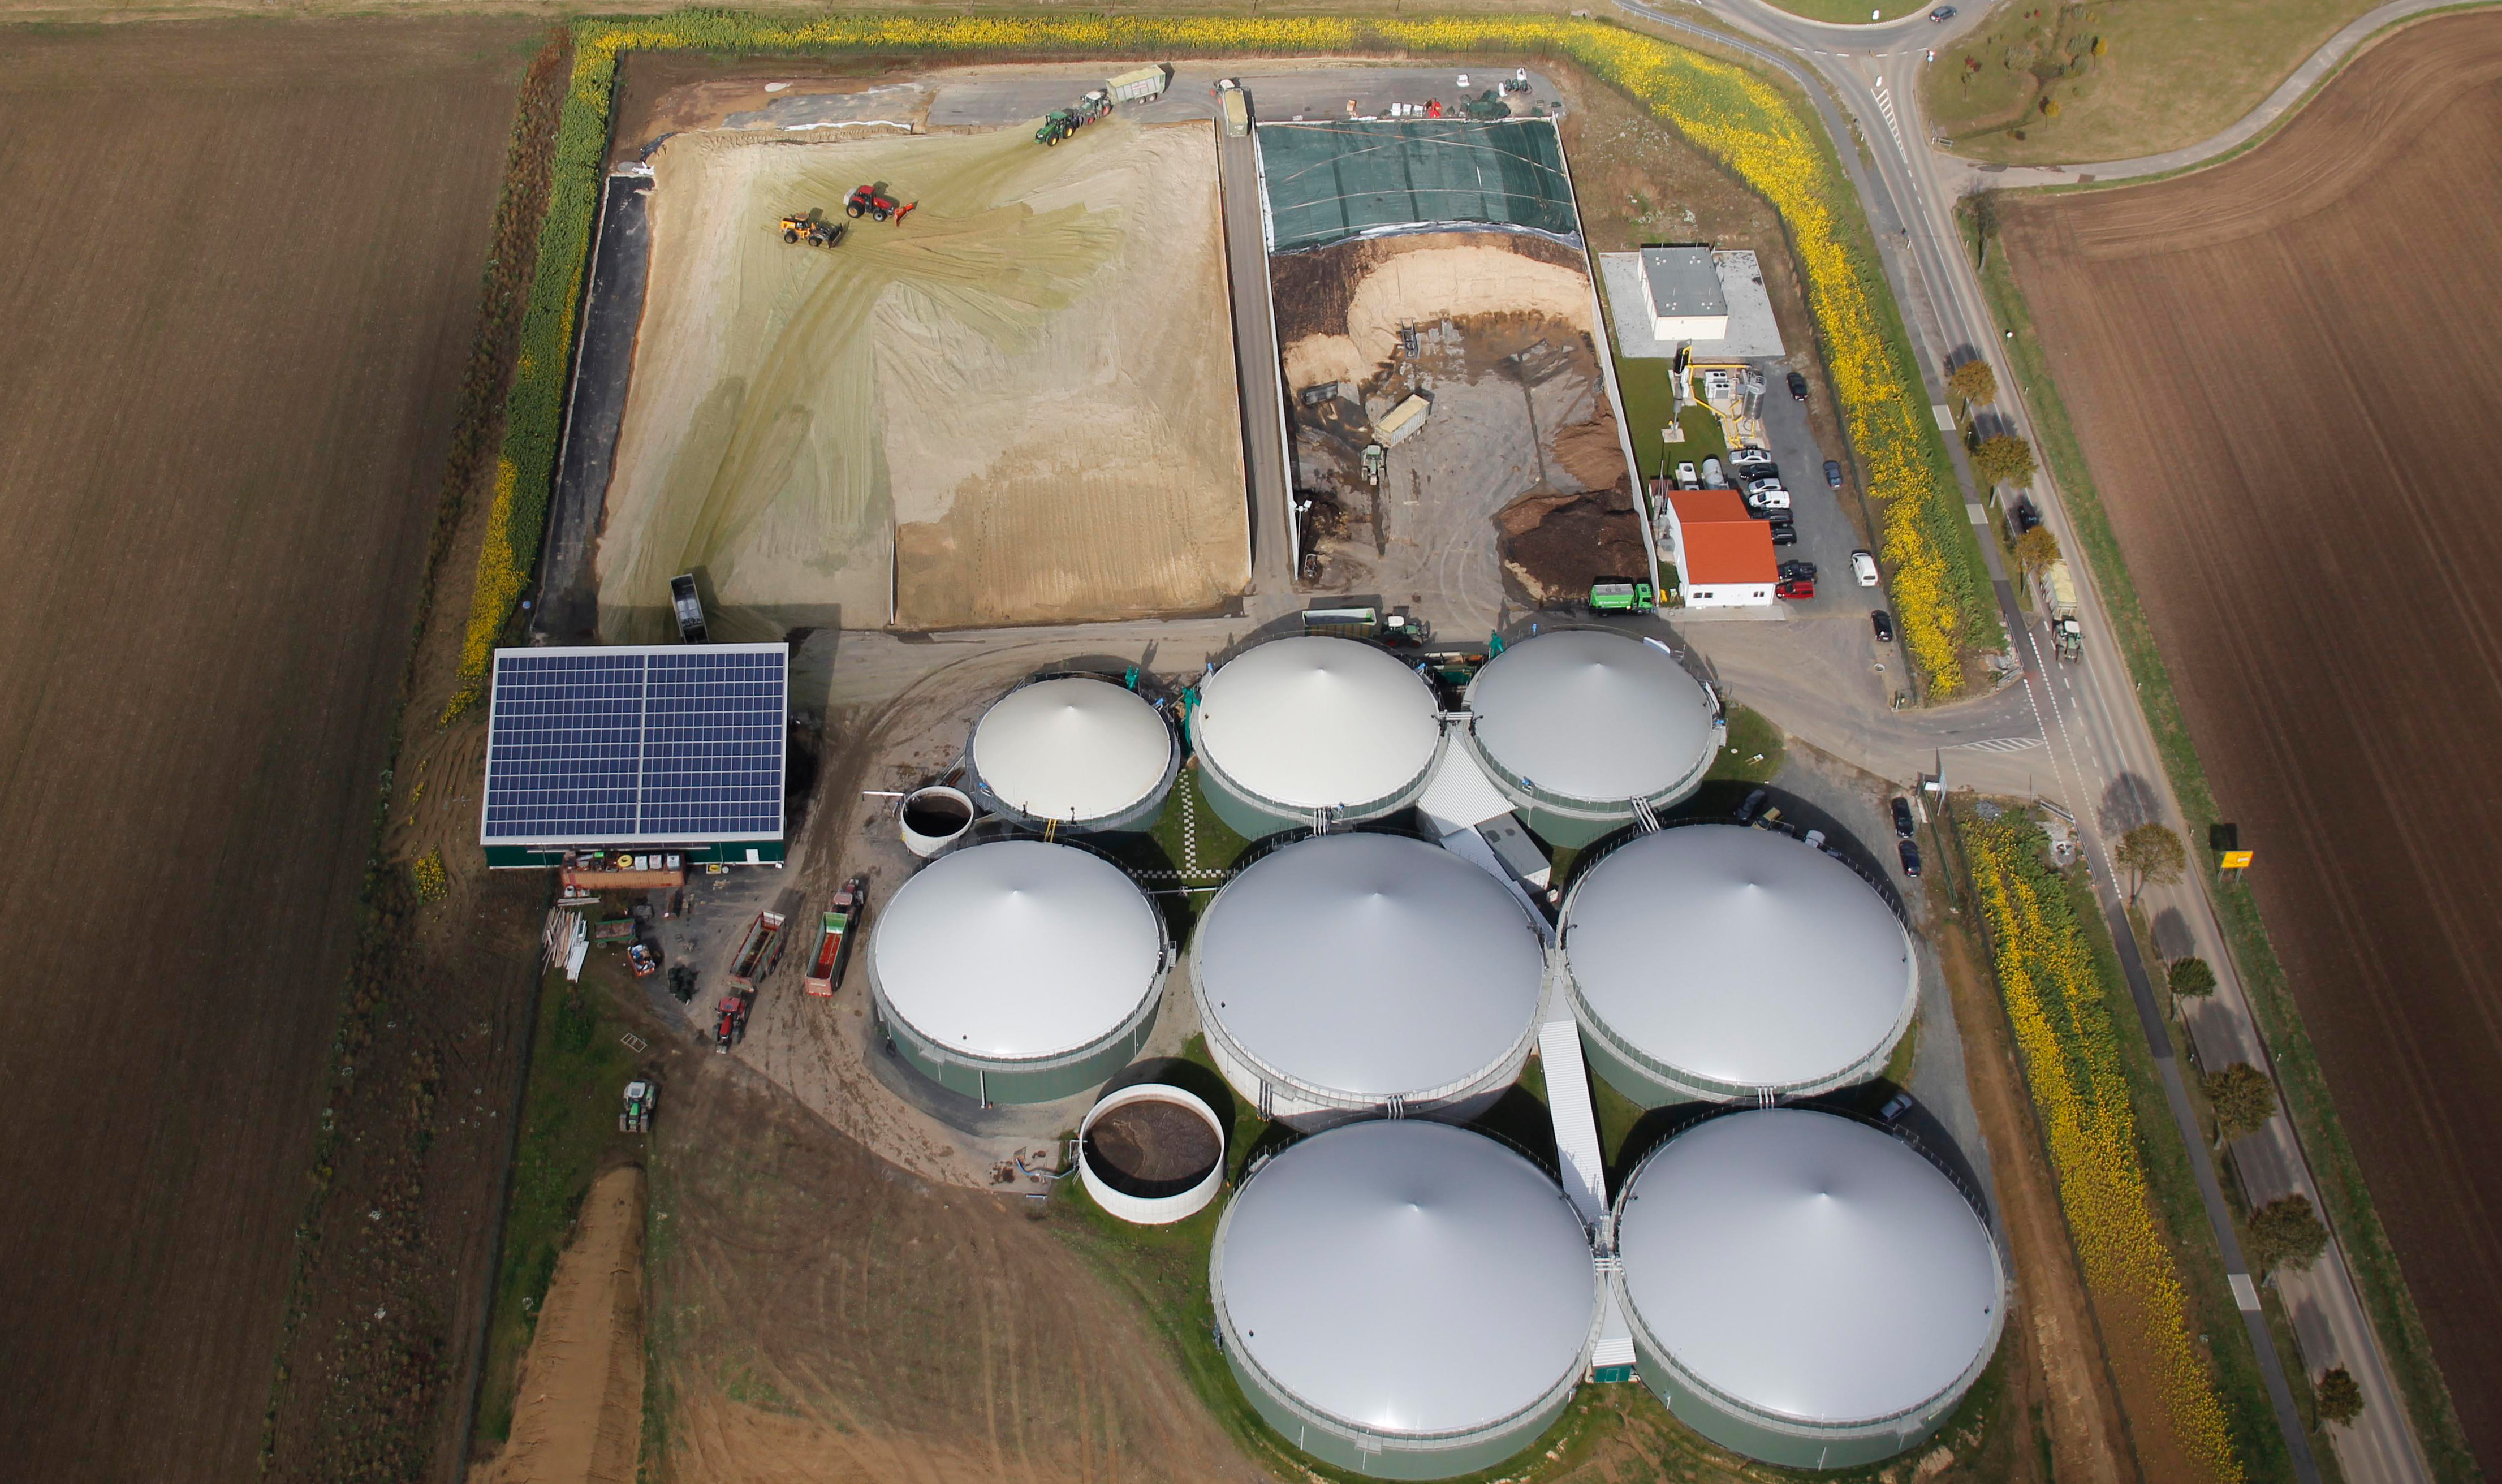 New Report Biogas Sector Still Growing Sun Wind Energy Large Plant Bio Gas Diagram A In Germany Photo Dpa